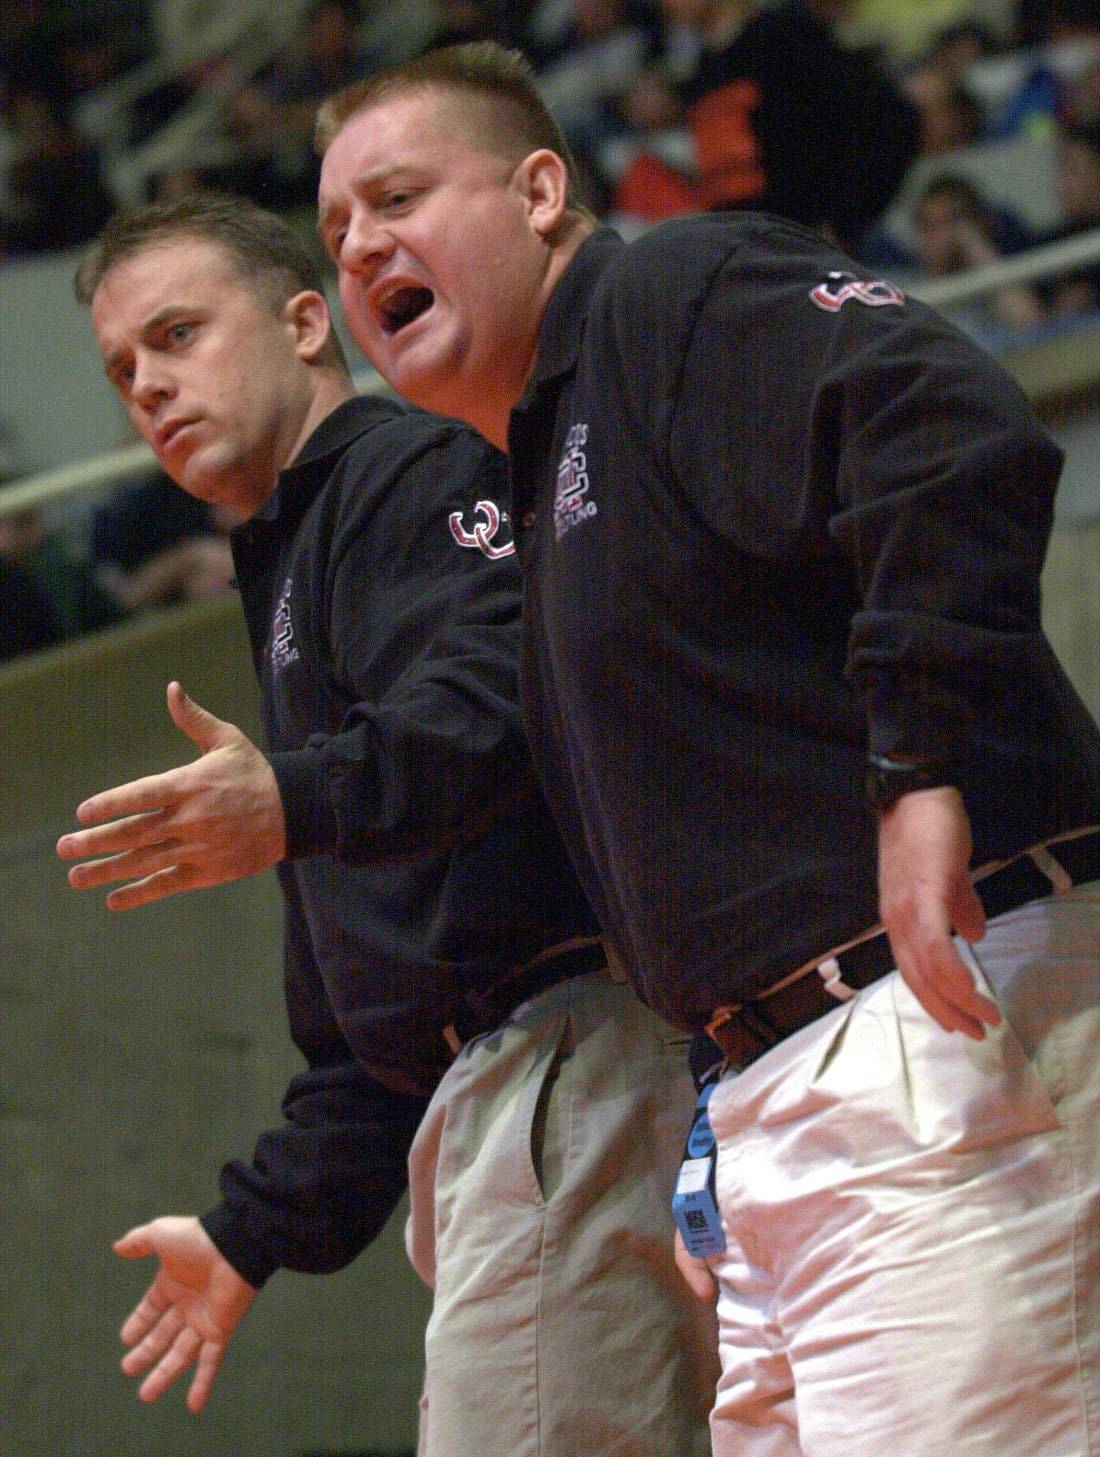 semis_2ps0216chach Photo0155390 hankins dupage Montini head coach Mike Bukovsky, front, coaches one of his wrestlers as assistant John Dziewiatkowski helps as well. Montini had a strong team showing with nine wrestlers in the semifinals Saturday.